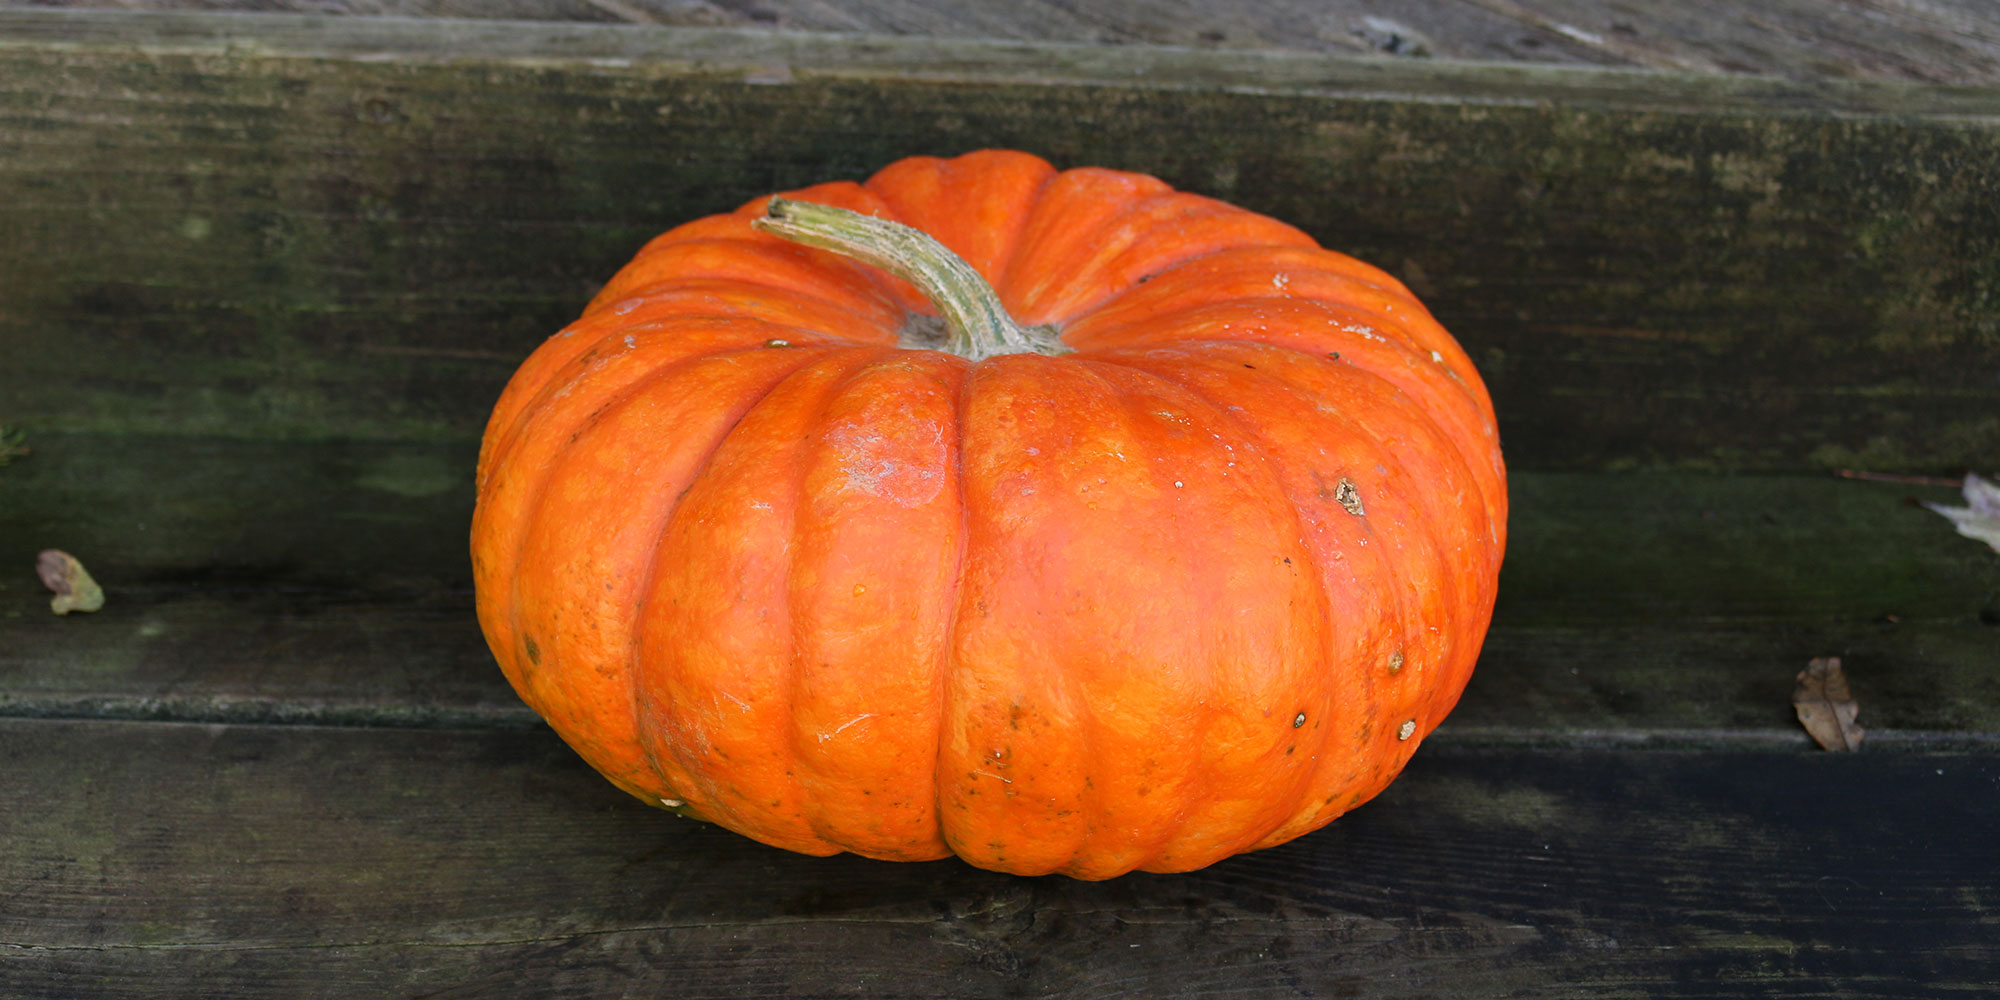 A bright-orange Cinderella pumpkin